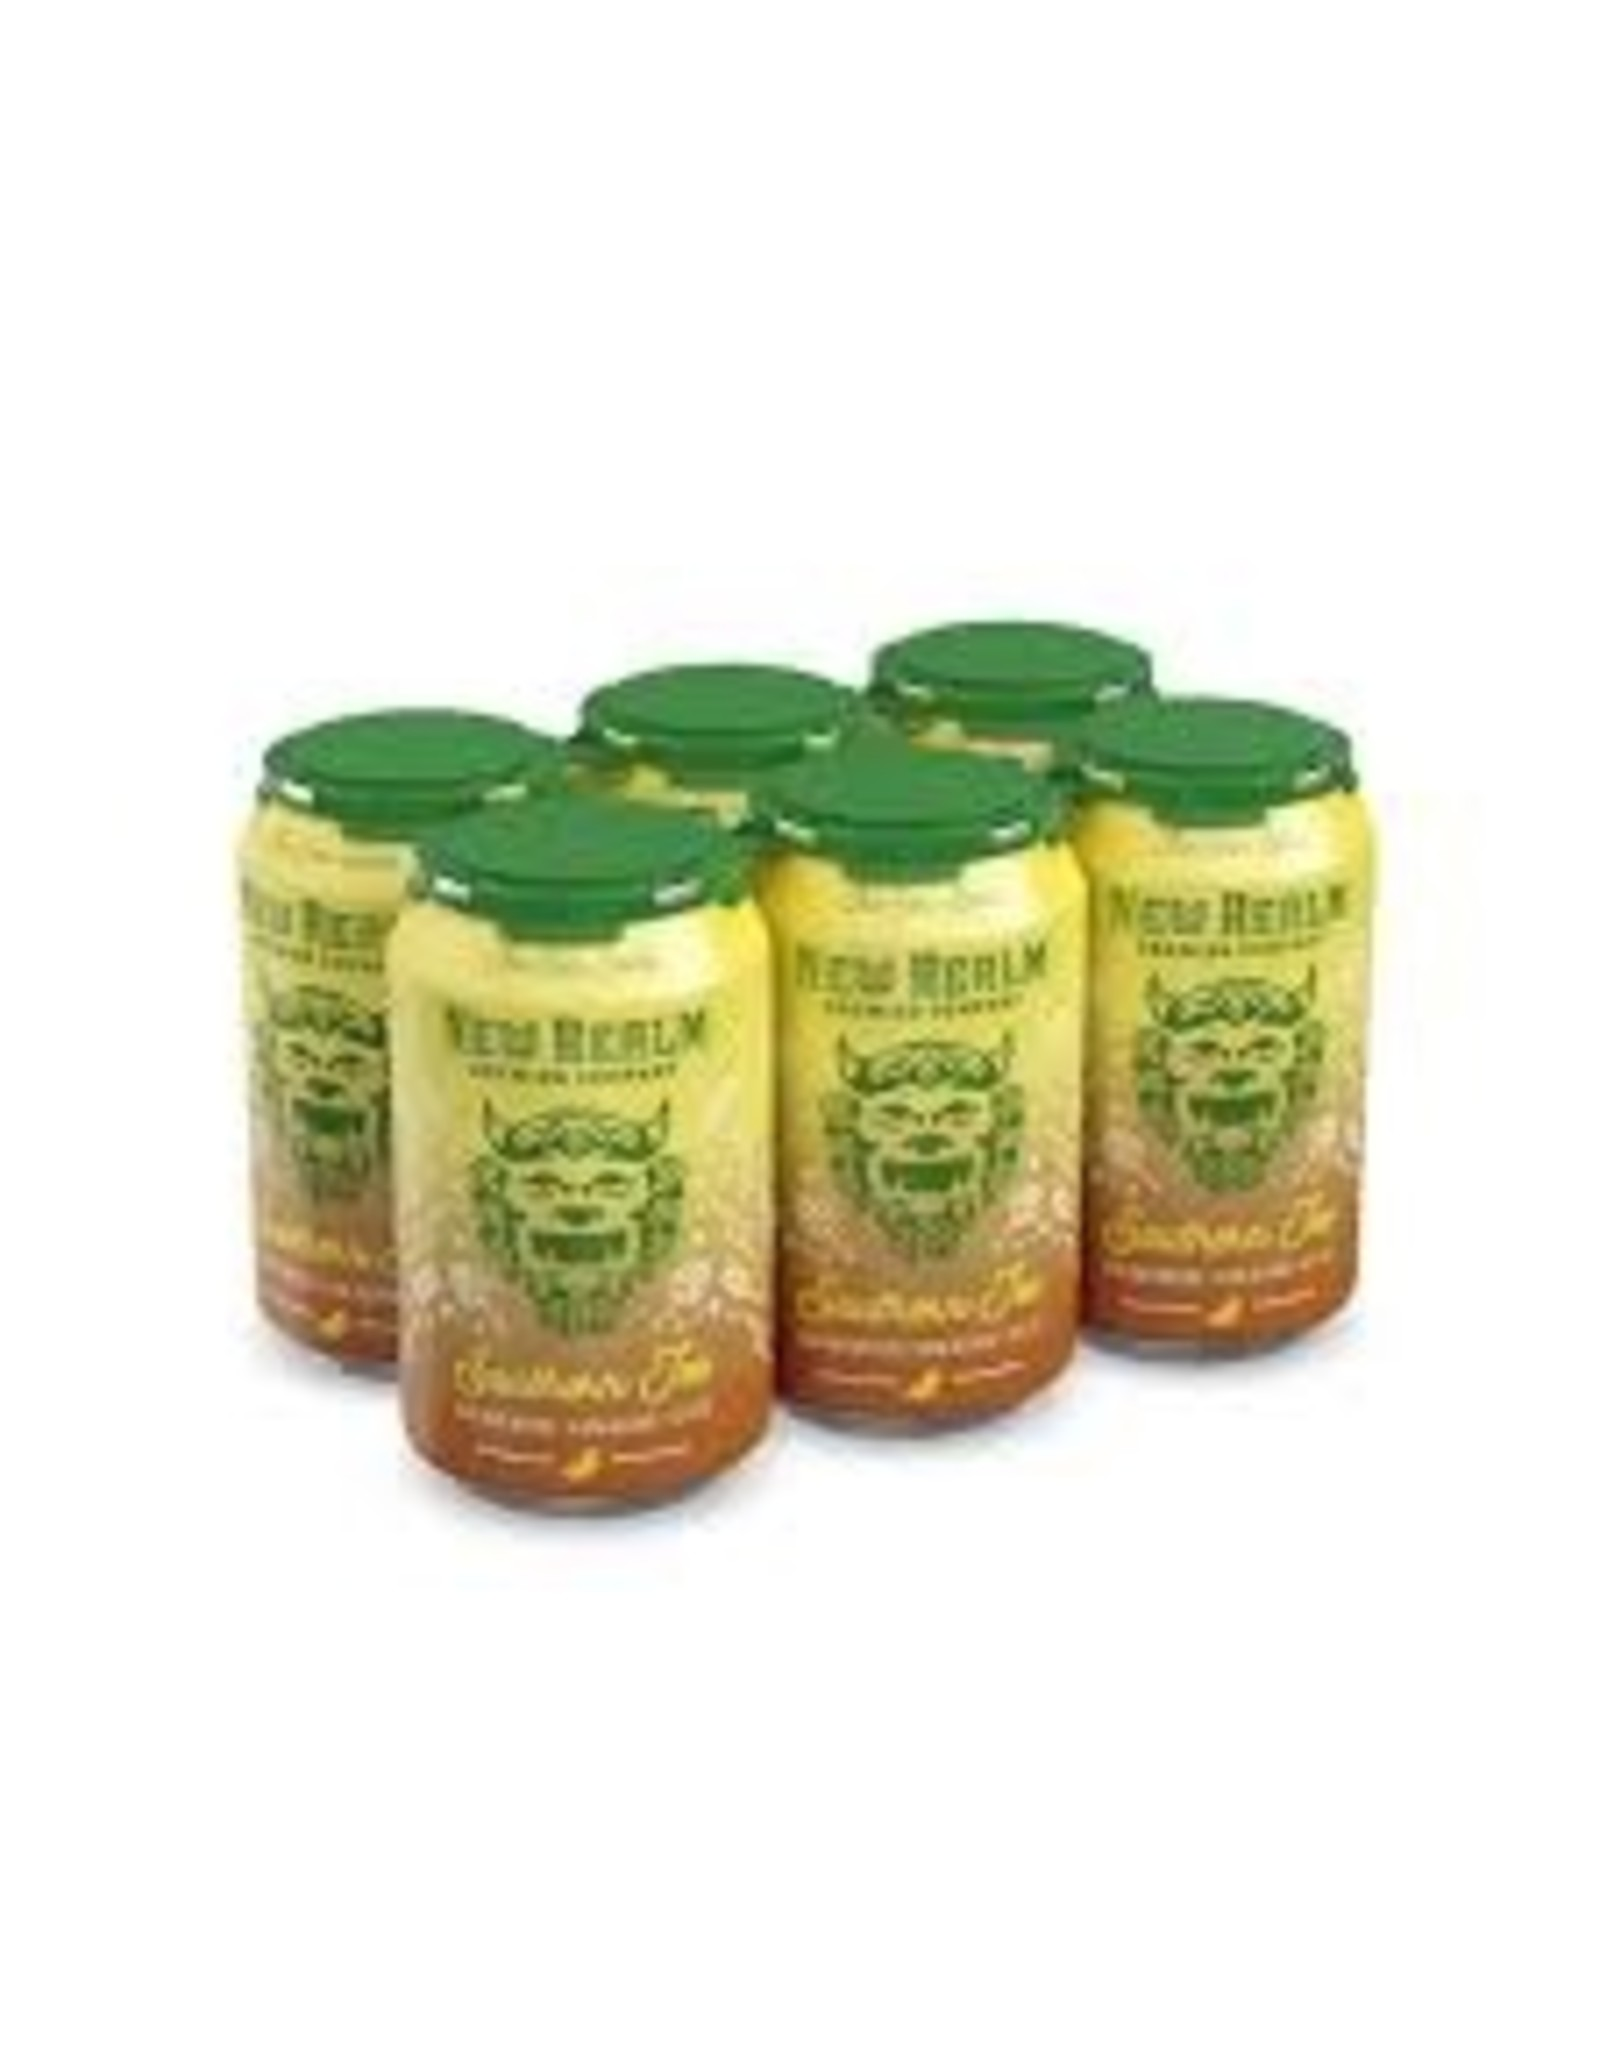 New Realm New Realm Southern Tee 6pk can